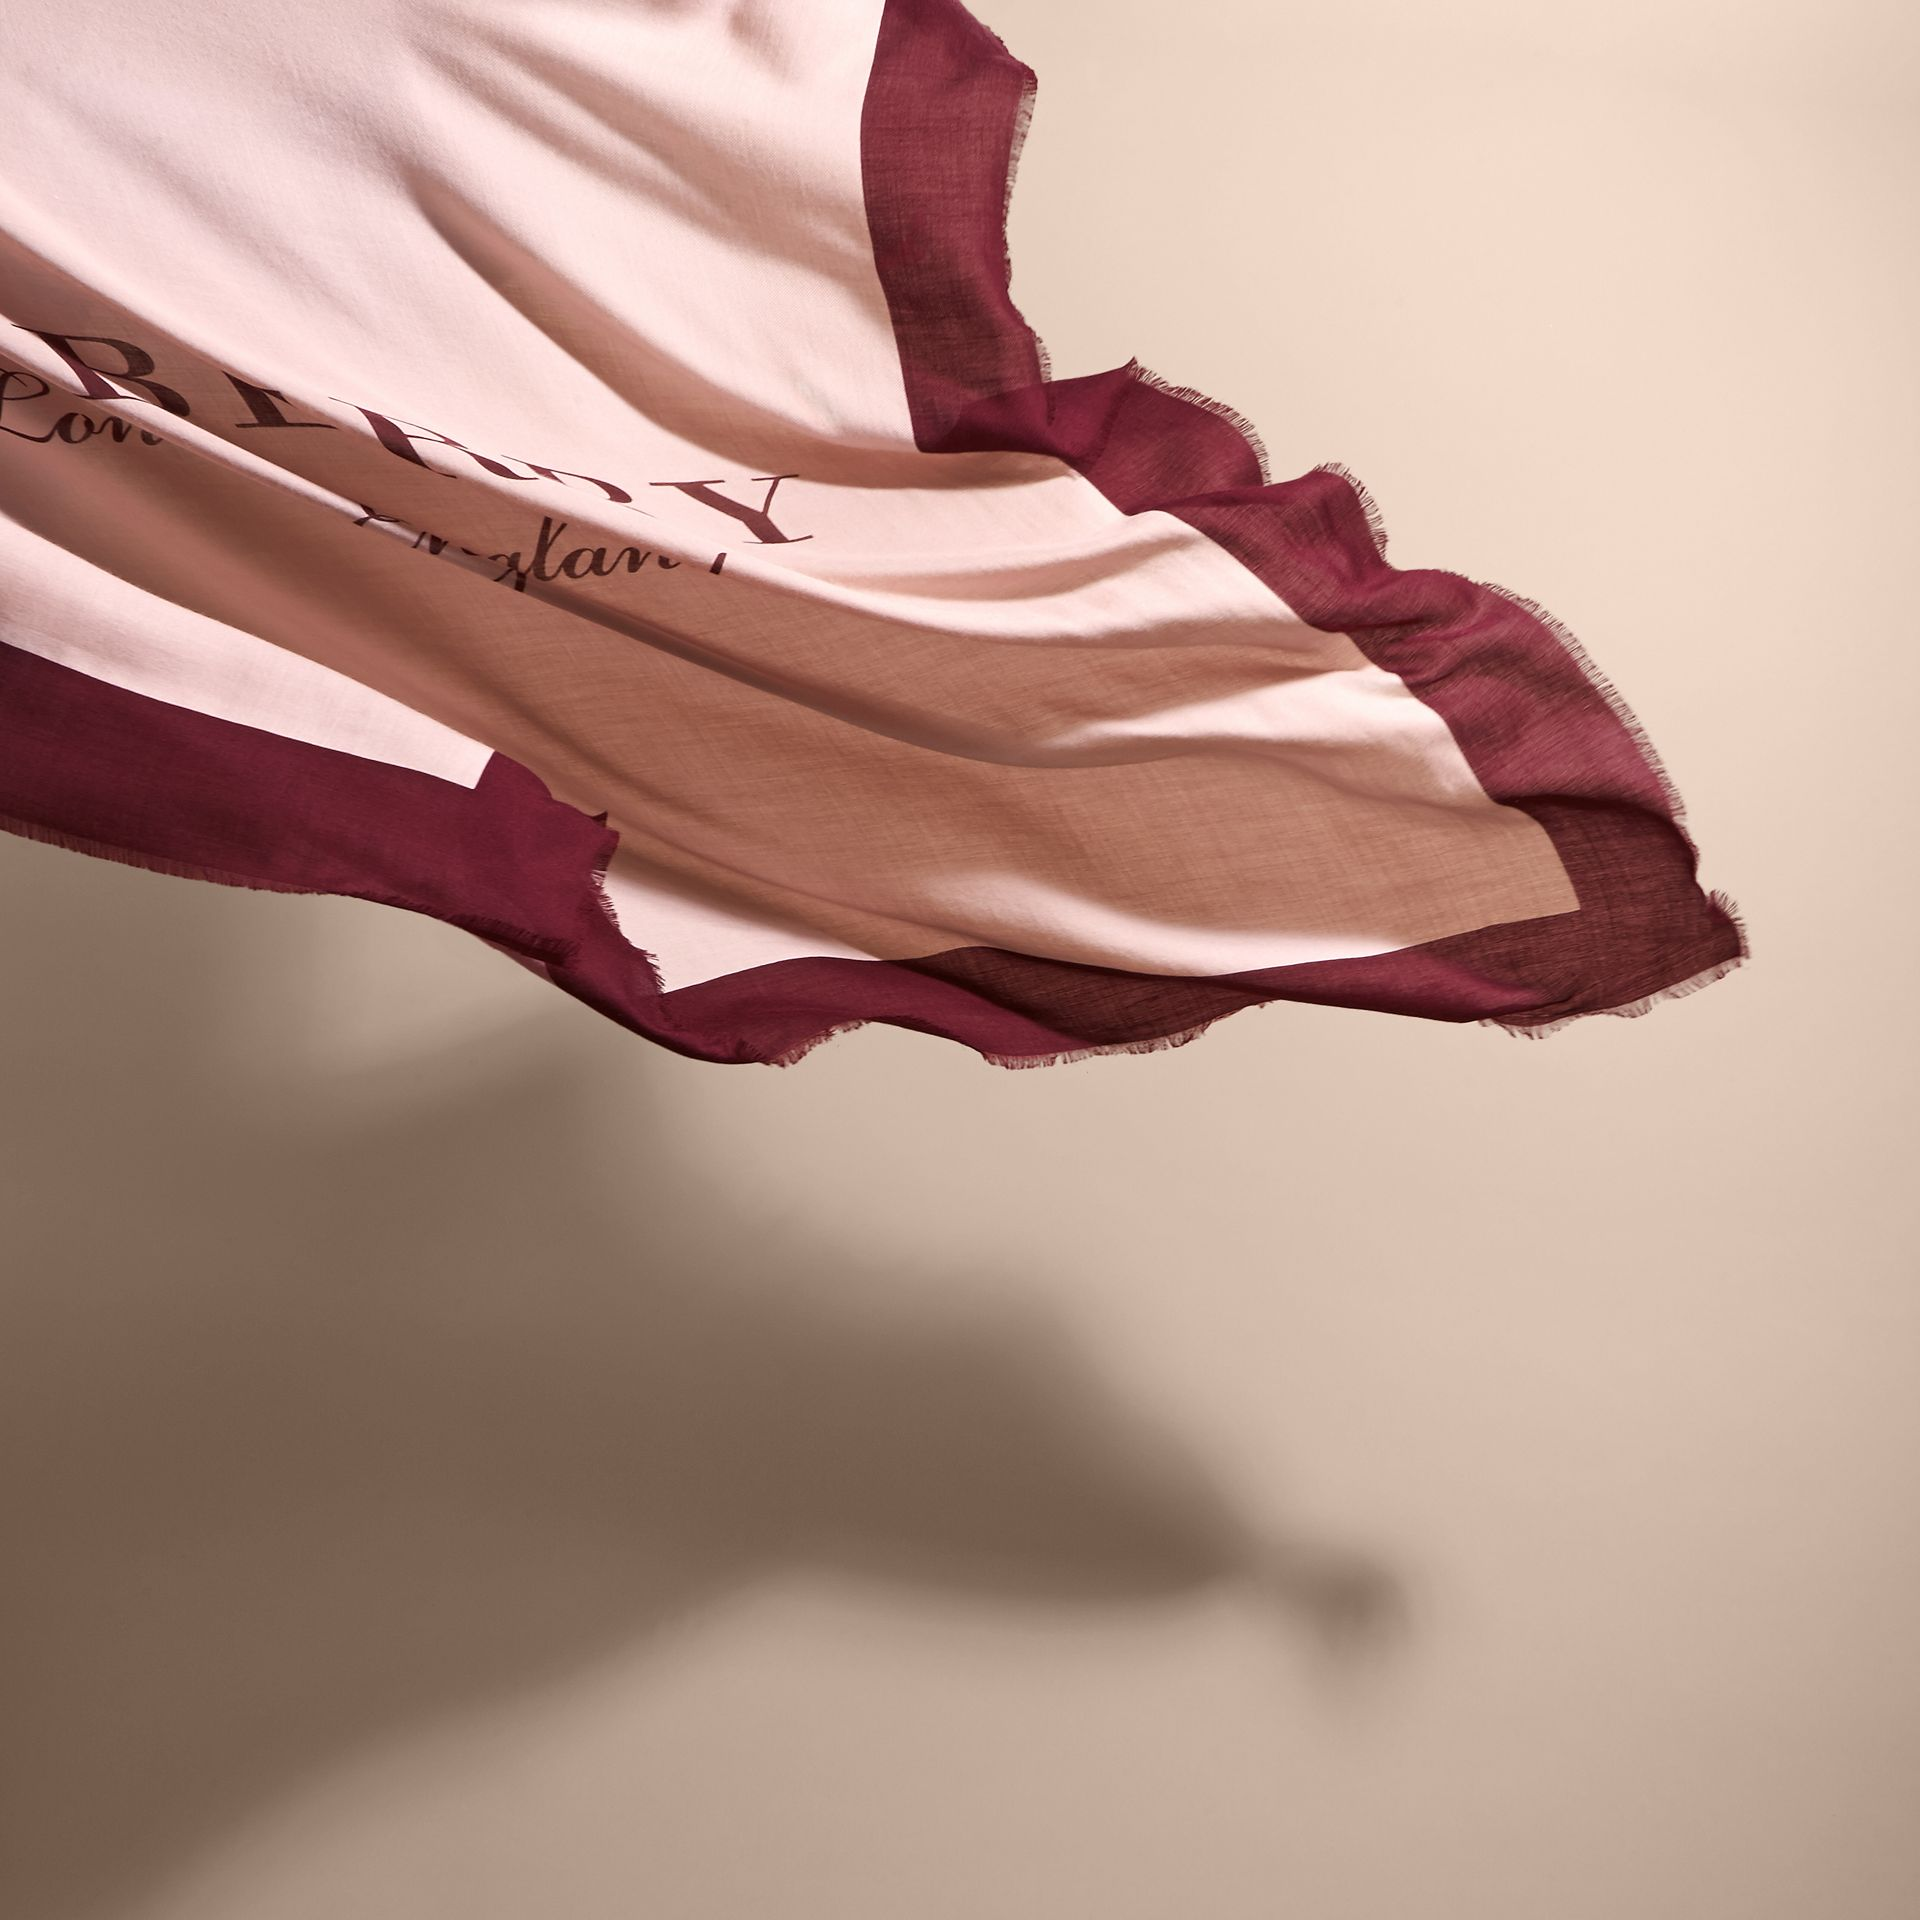 Burberry Print Cashmere Blend Scarf Rose/garnet - gallery image 4